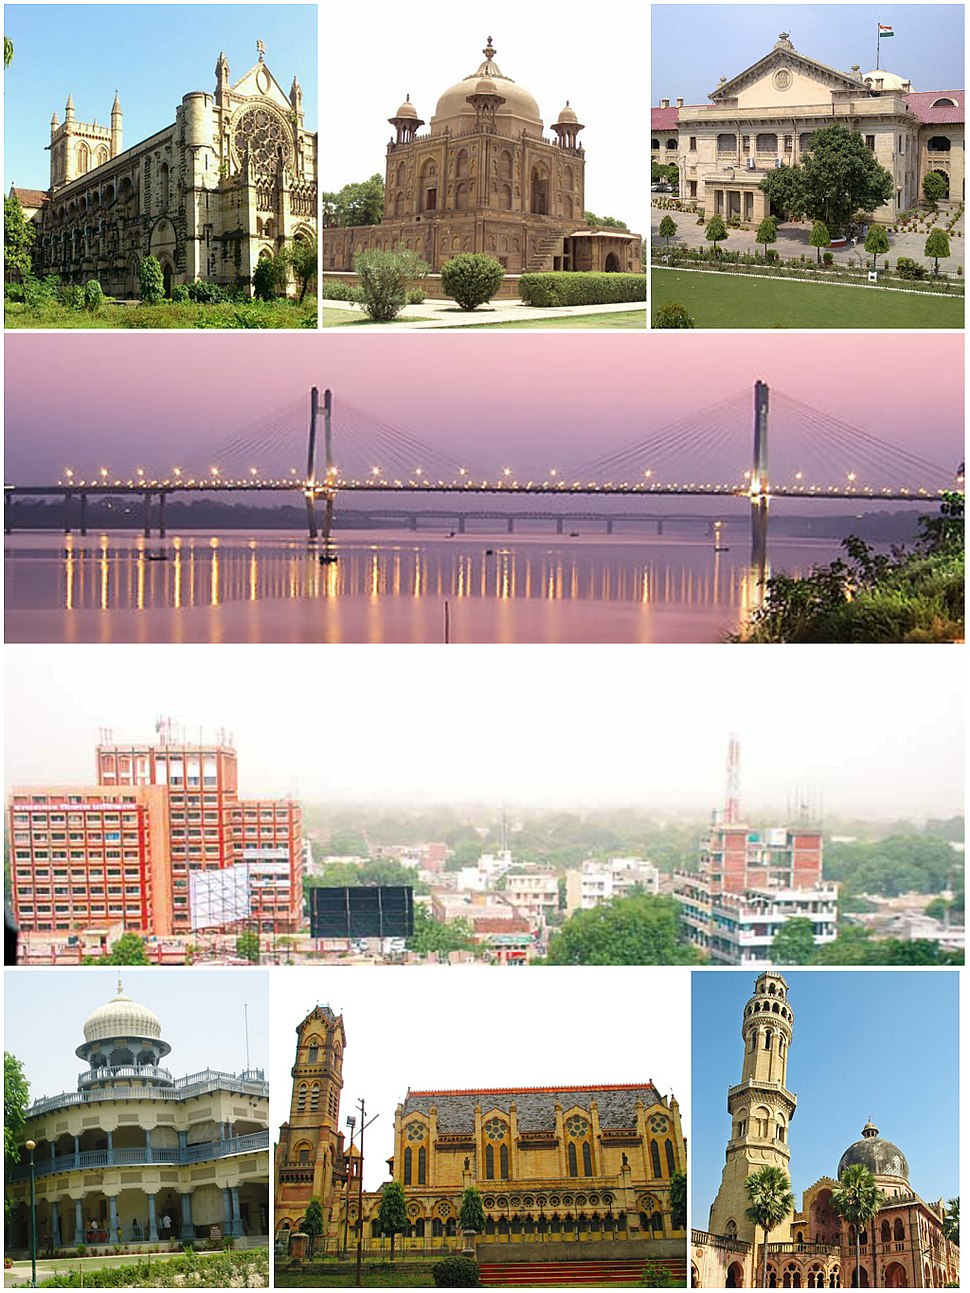 Clockwise from top left: All Saints Cathedral, Khusro Bagh, the Allahabad High Court, the New Yamuna Bridge near Sangam, the skyline of Civil Lines, the University of Allahabad, Thornhill Mayne Memorial at Alfred Park and Anand Bhavan.